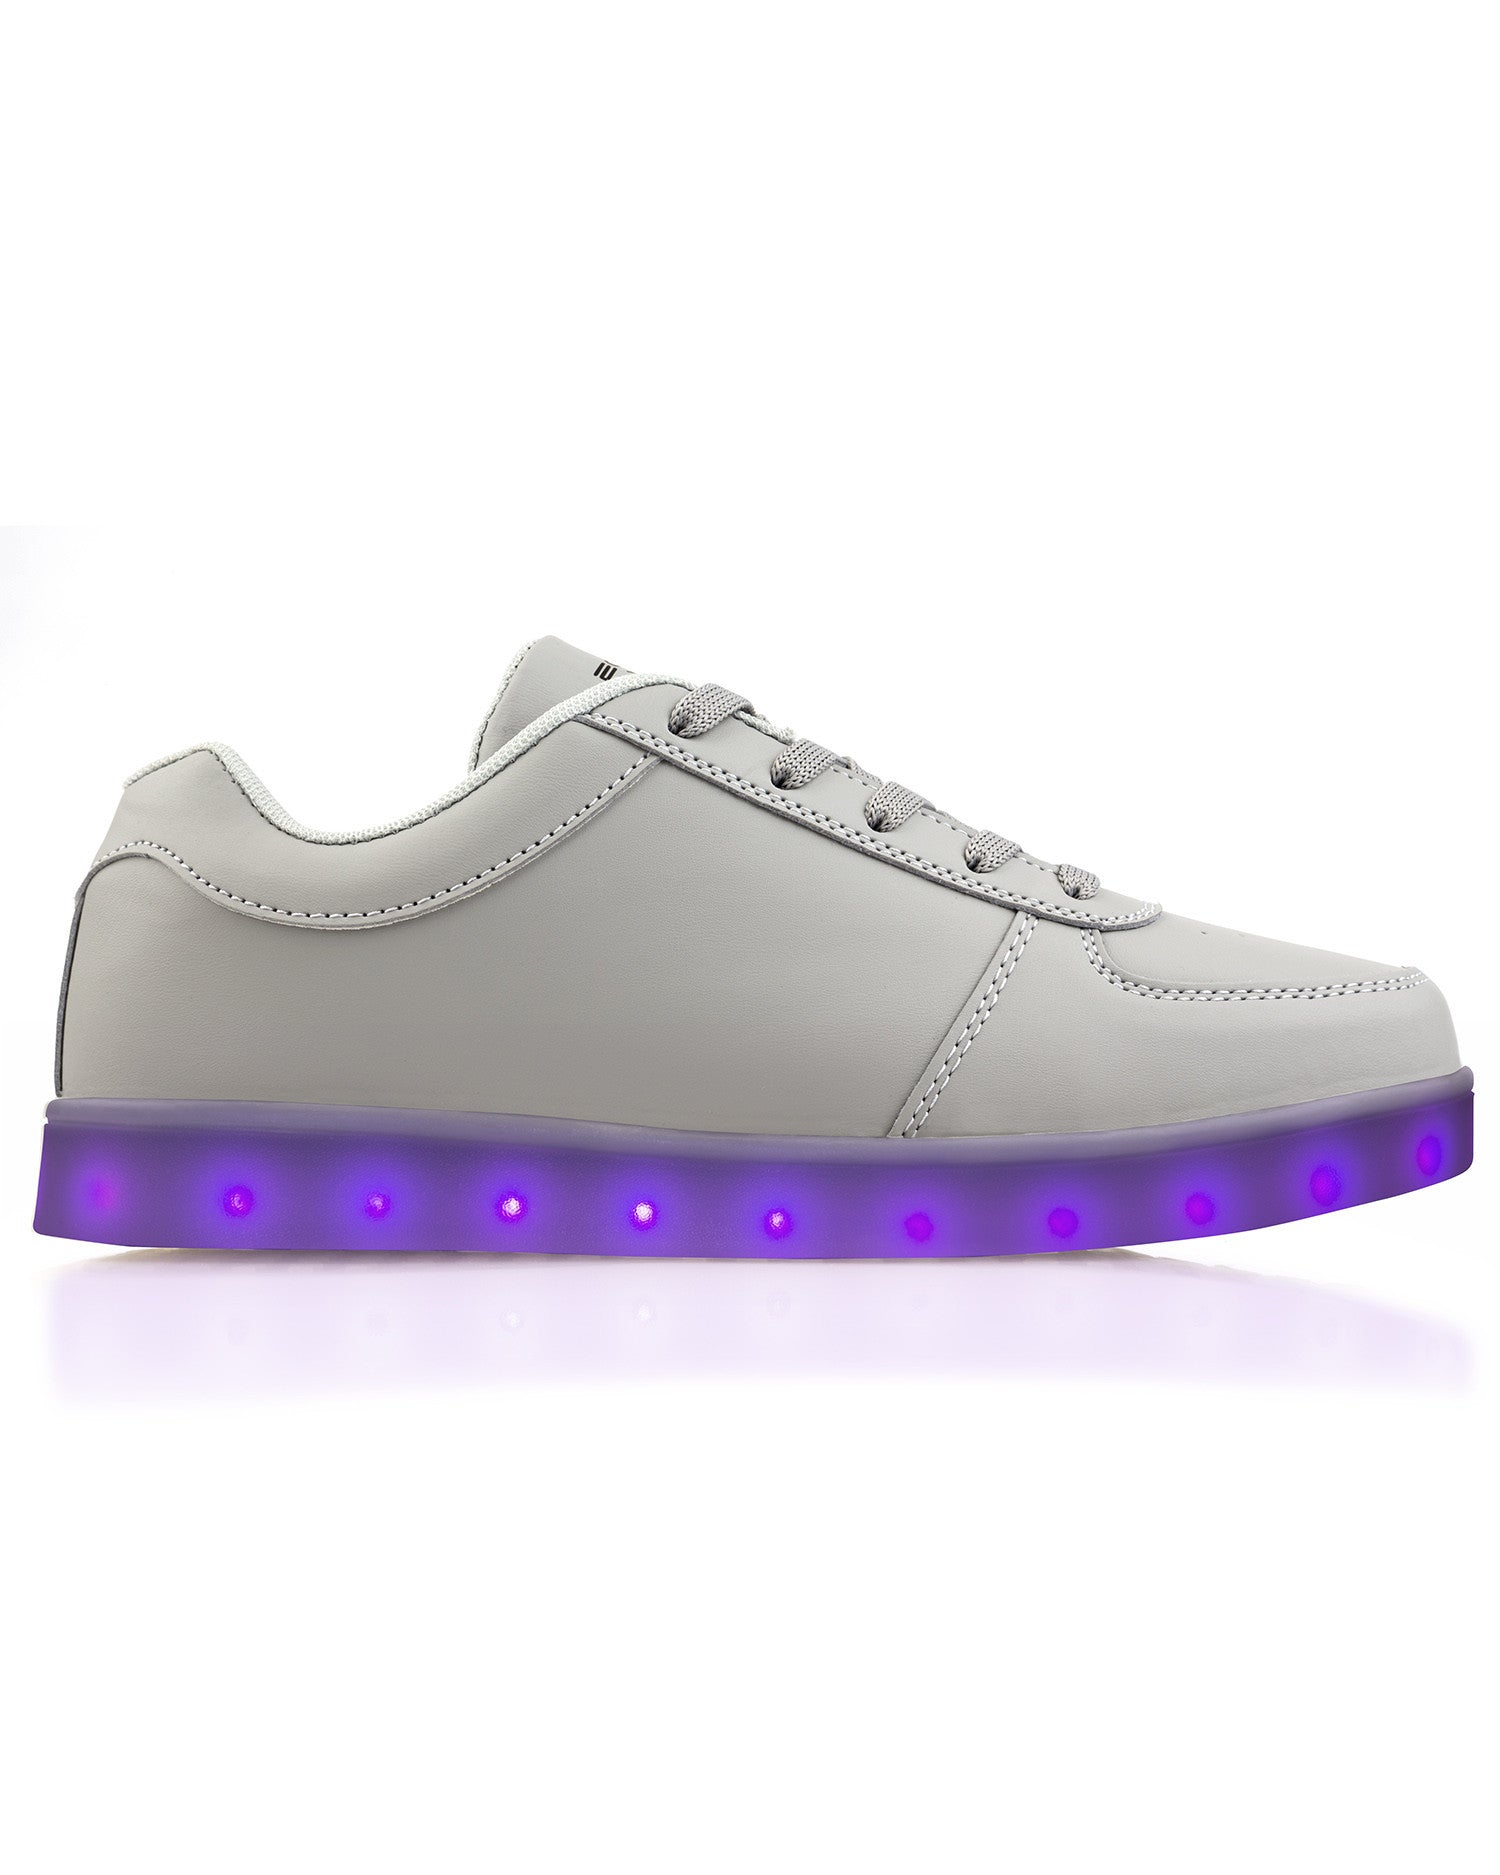 Electric Shoes - The Original - Electric Styles | World's Number 1 Light Up Shoe Store - {product_type}} - Grey / Men's 8 - 13